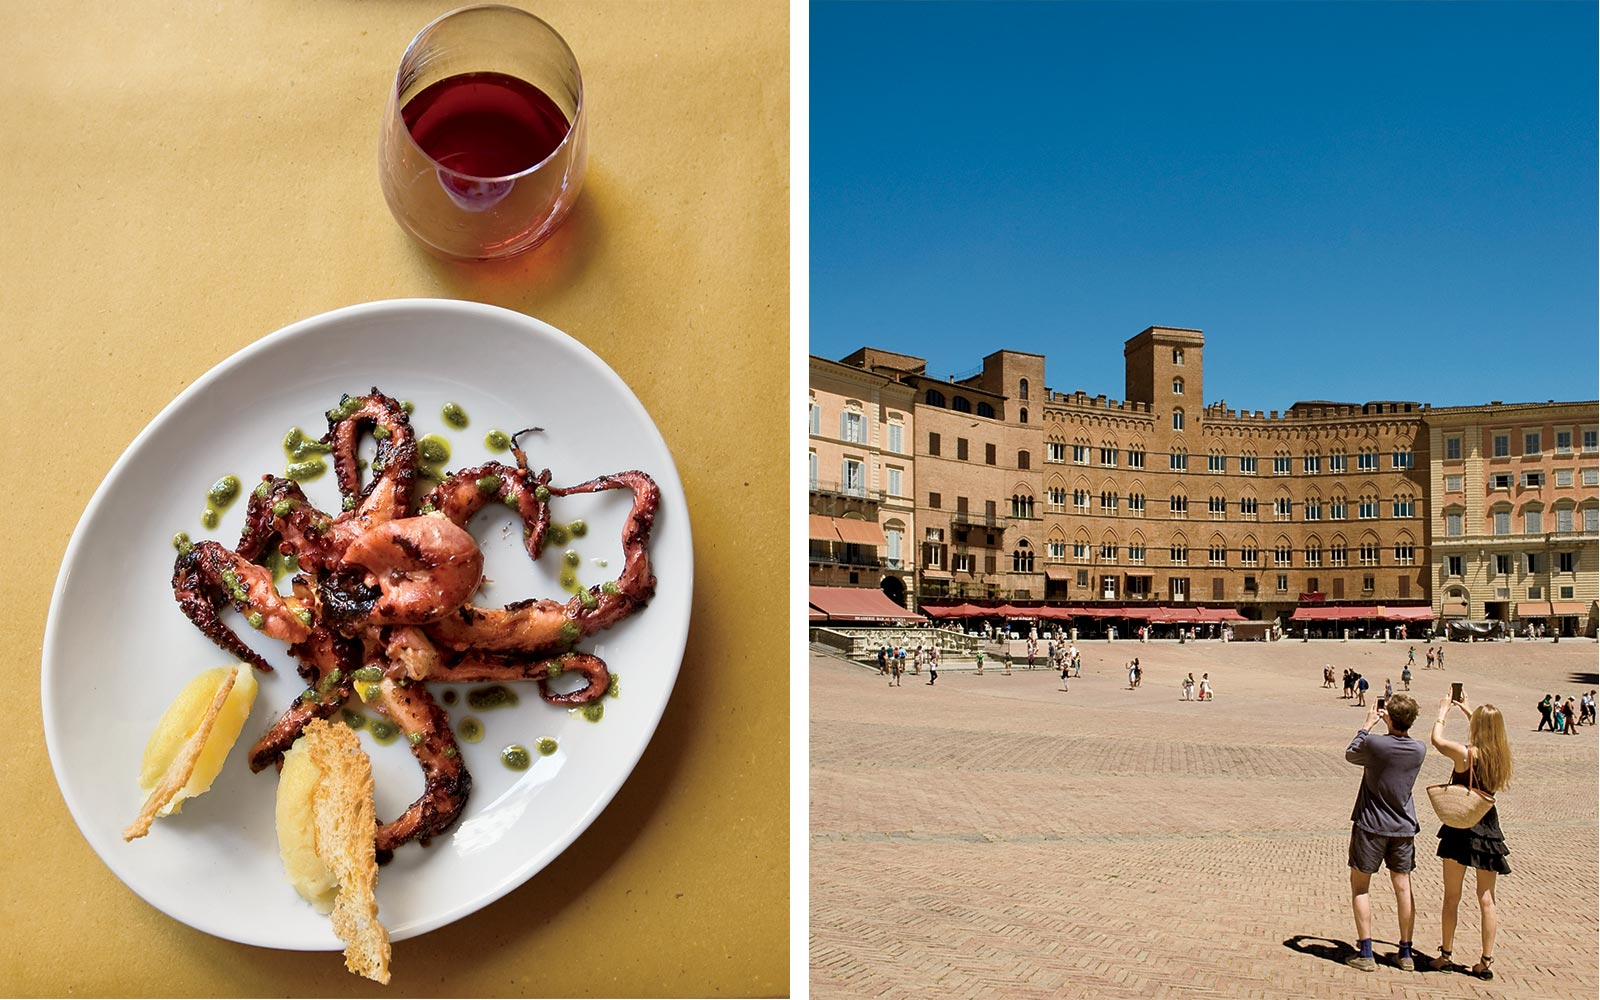 Grilled octopus from Babazuf restaurant, and the piazza of Siena, Italy